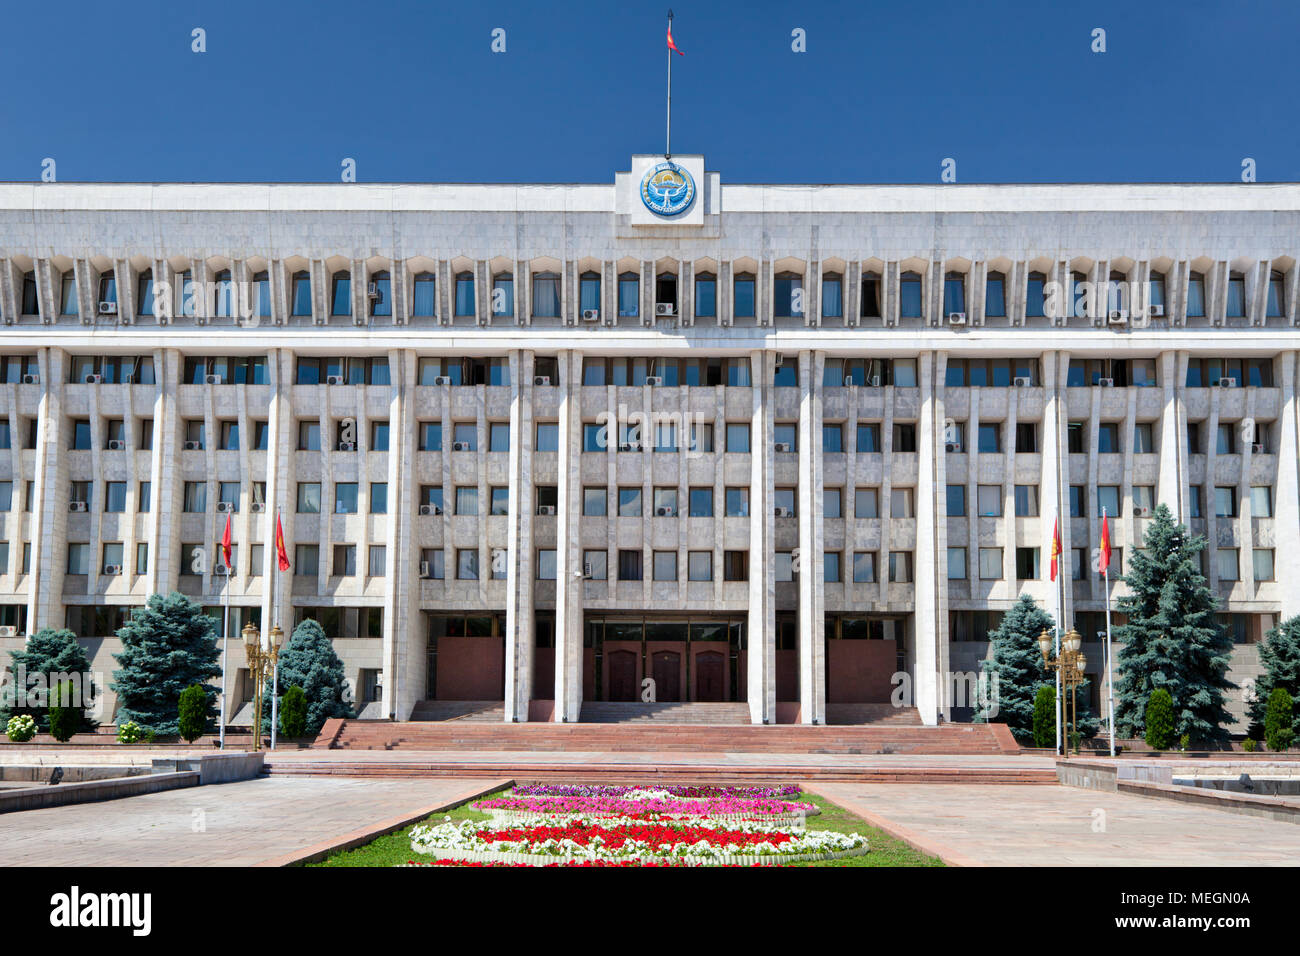 View of the Supreme Council (Parliament) of the Kyrgyz Republic in Bishkek city - Stock Image